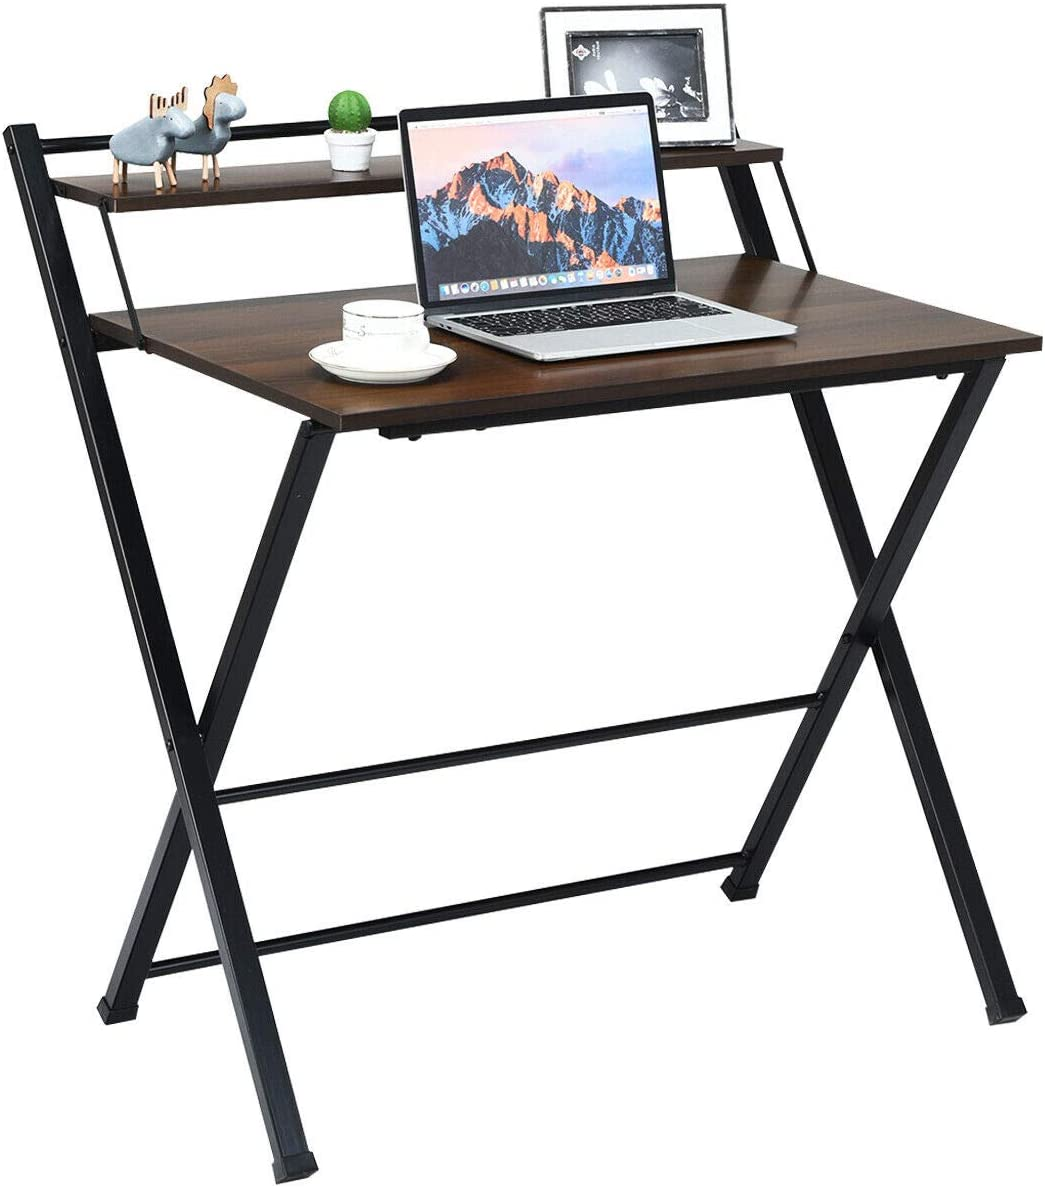 Tangkula Folding Computer Desk, Space-Saving Home Office Desk Working Table with Storage Shelf, Multipurpose Foldable Study Desk, Kid s Desk, Brown